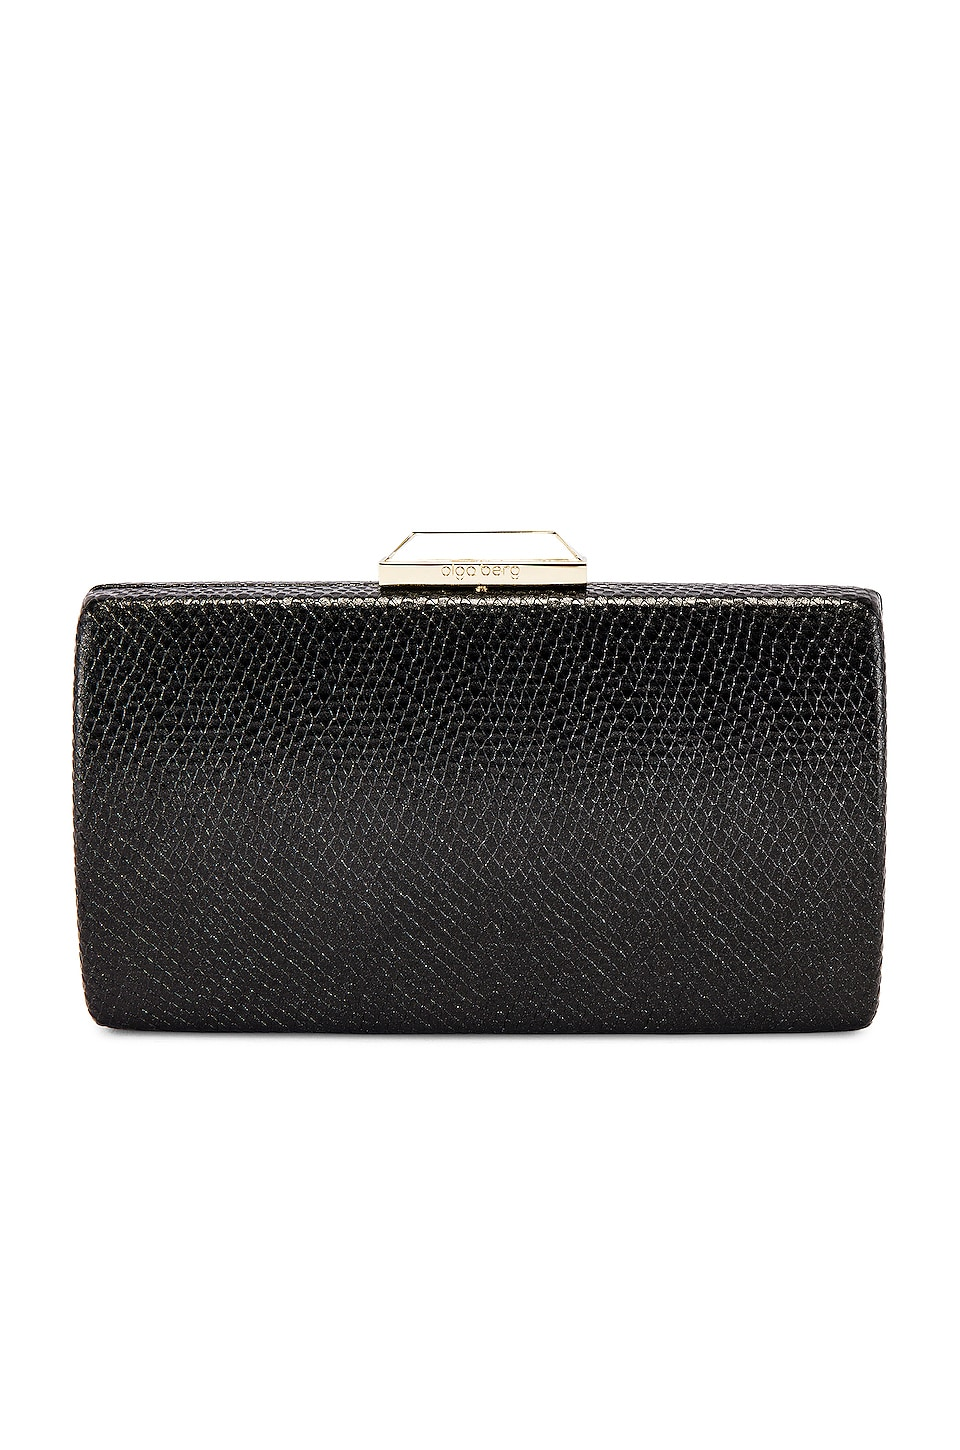 olga berg Giselle Metallic Reptile Clutch in Black